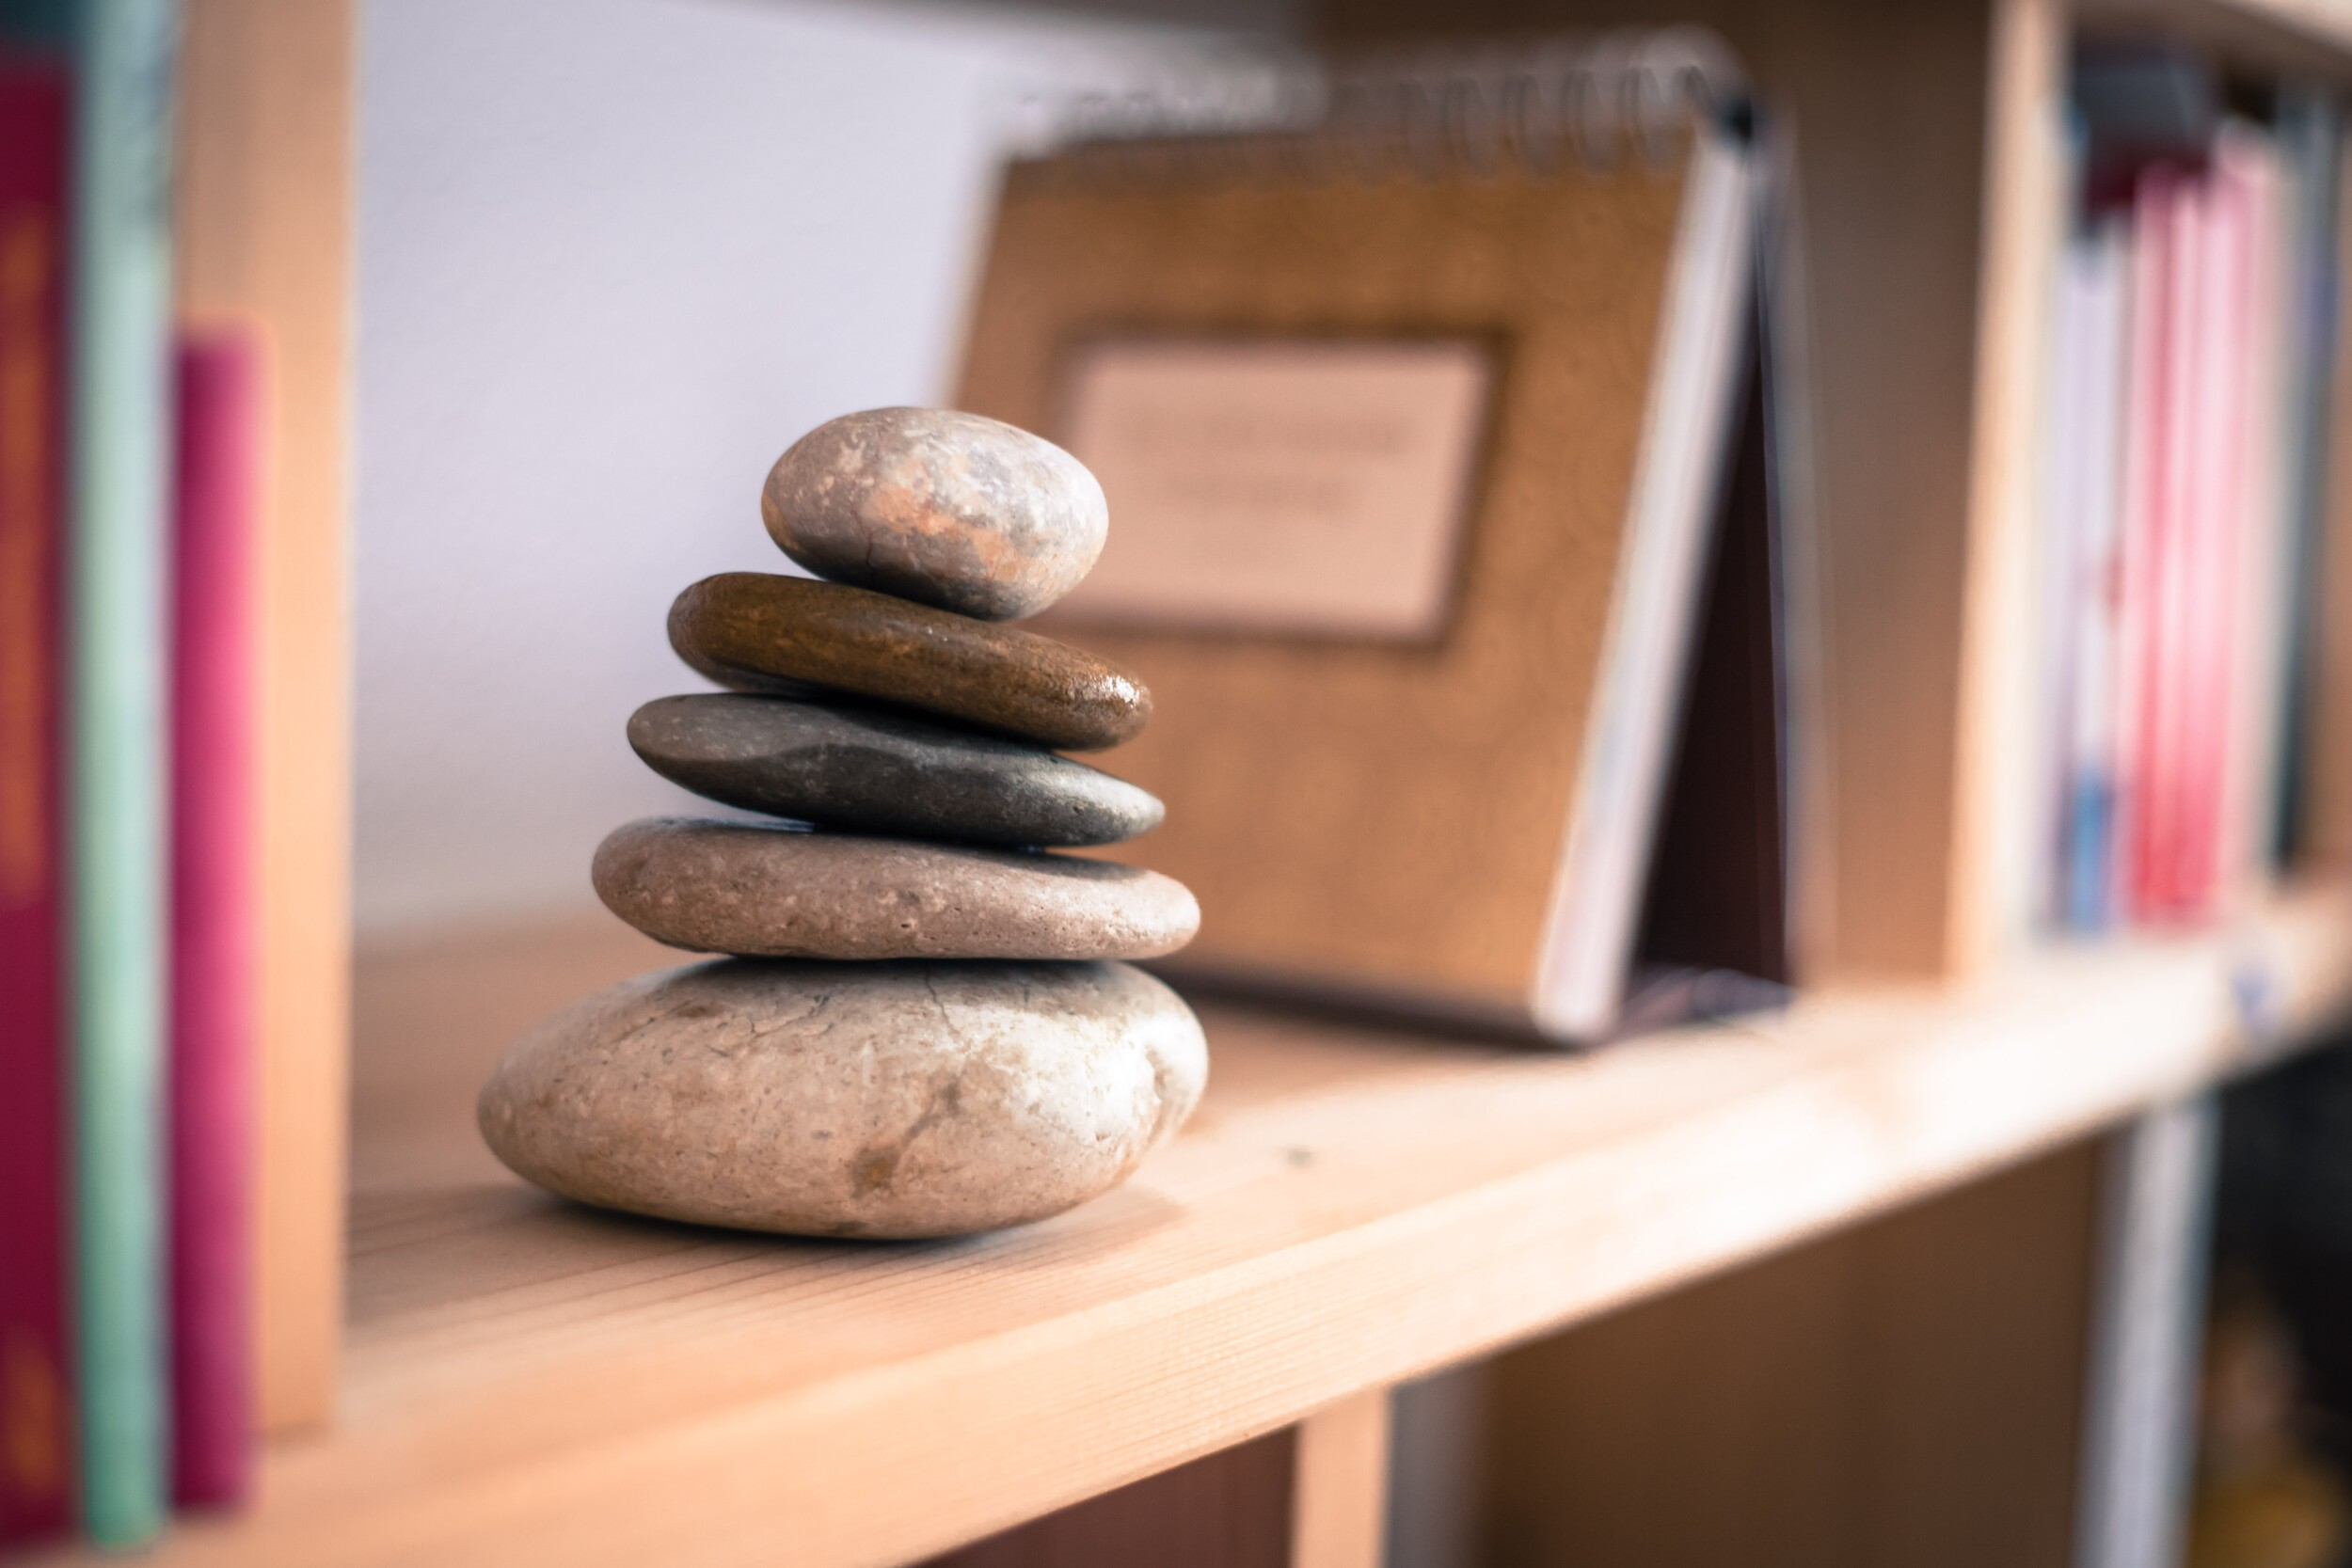 Stone cairn in a book shelf in the living room